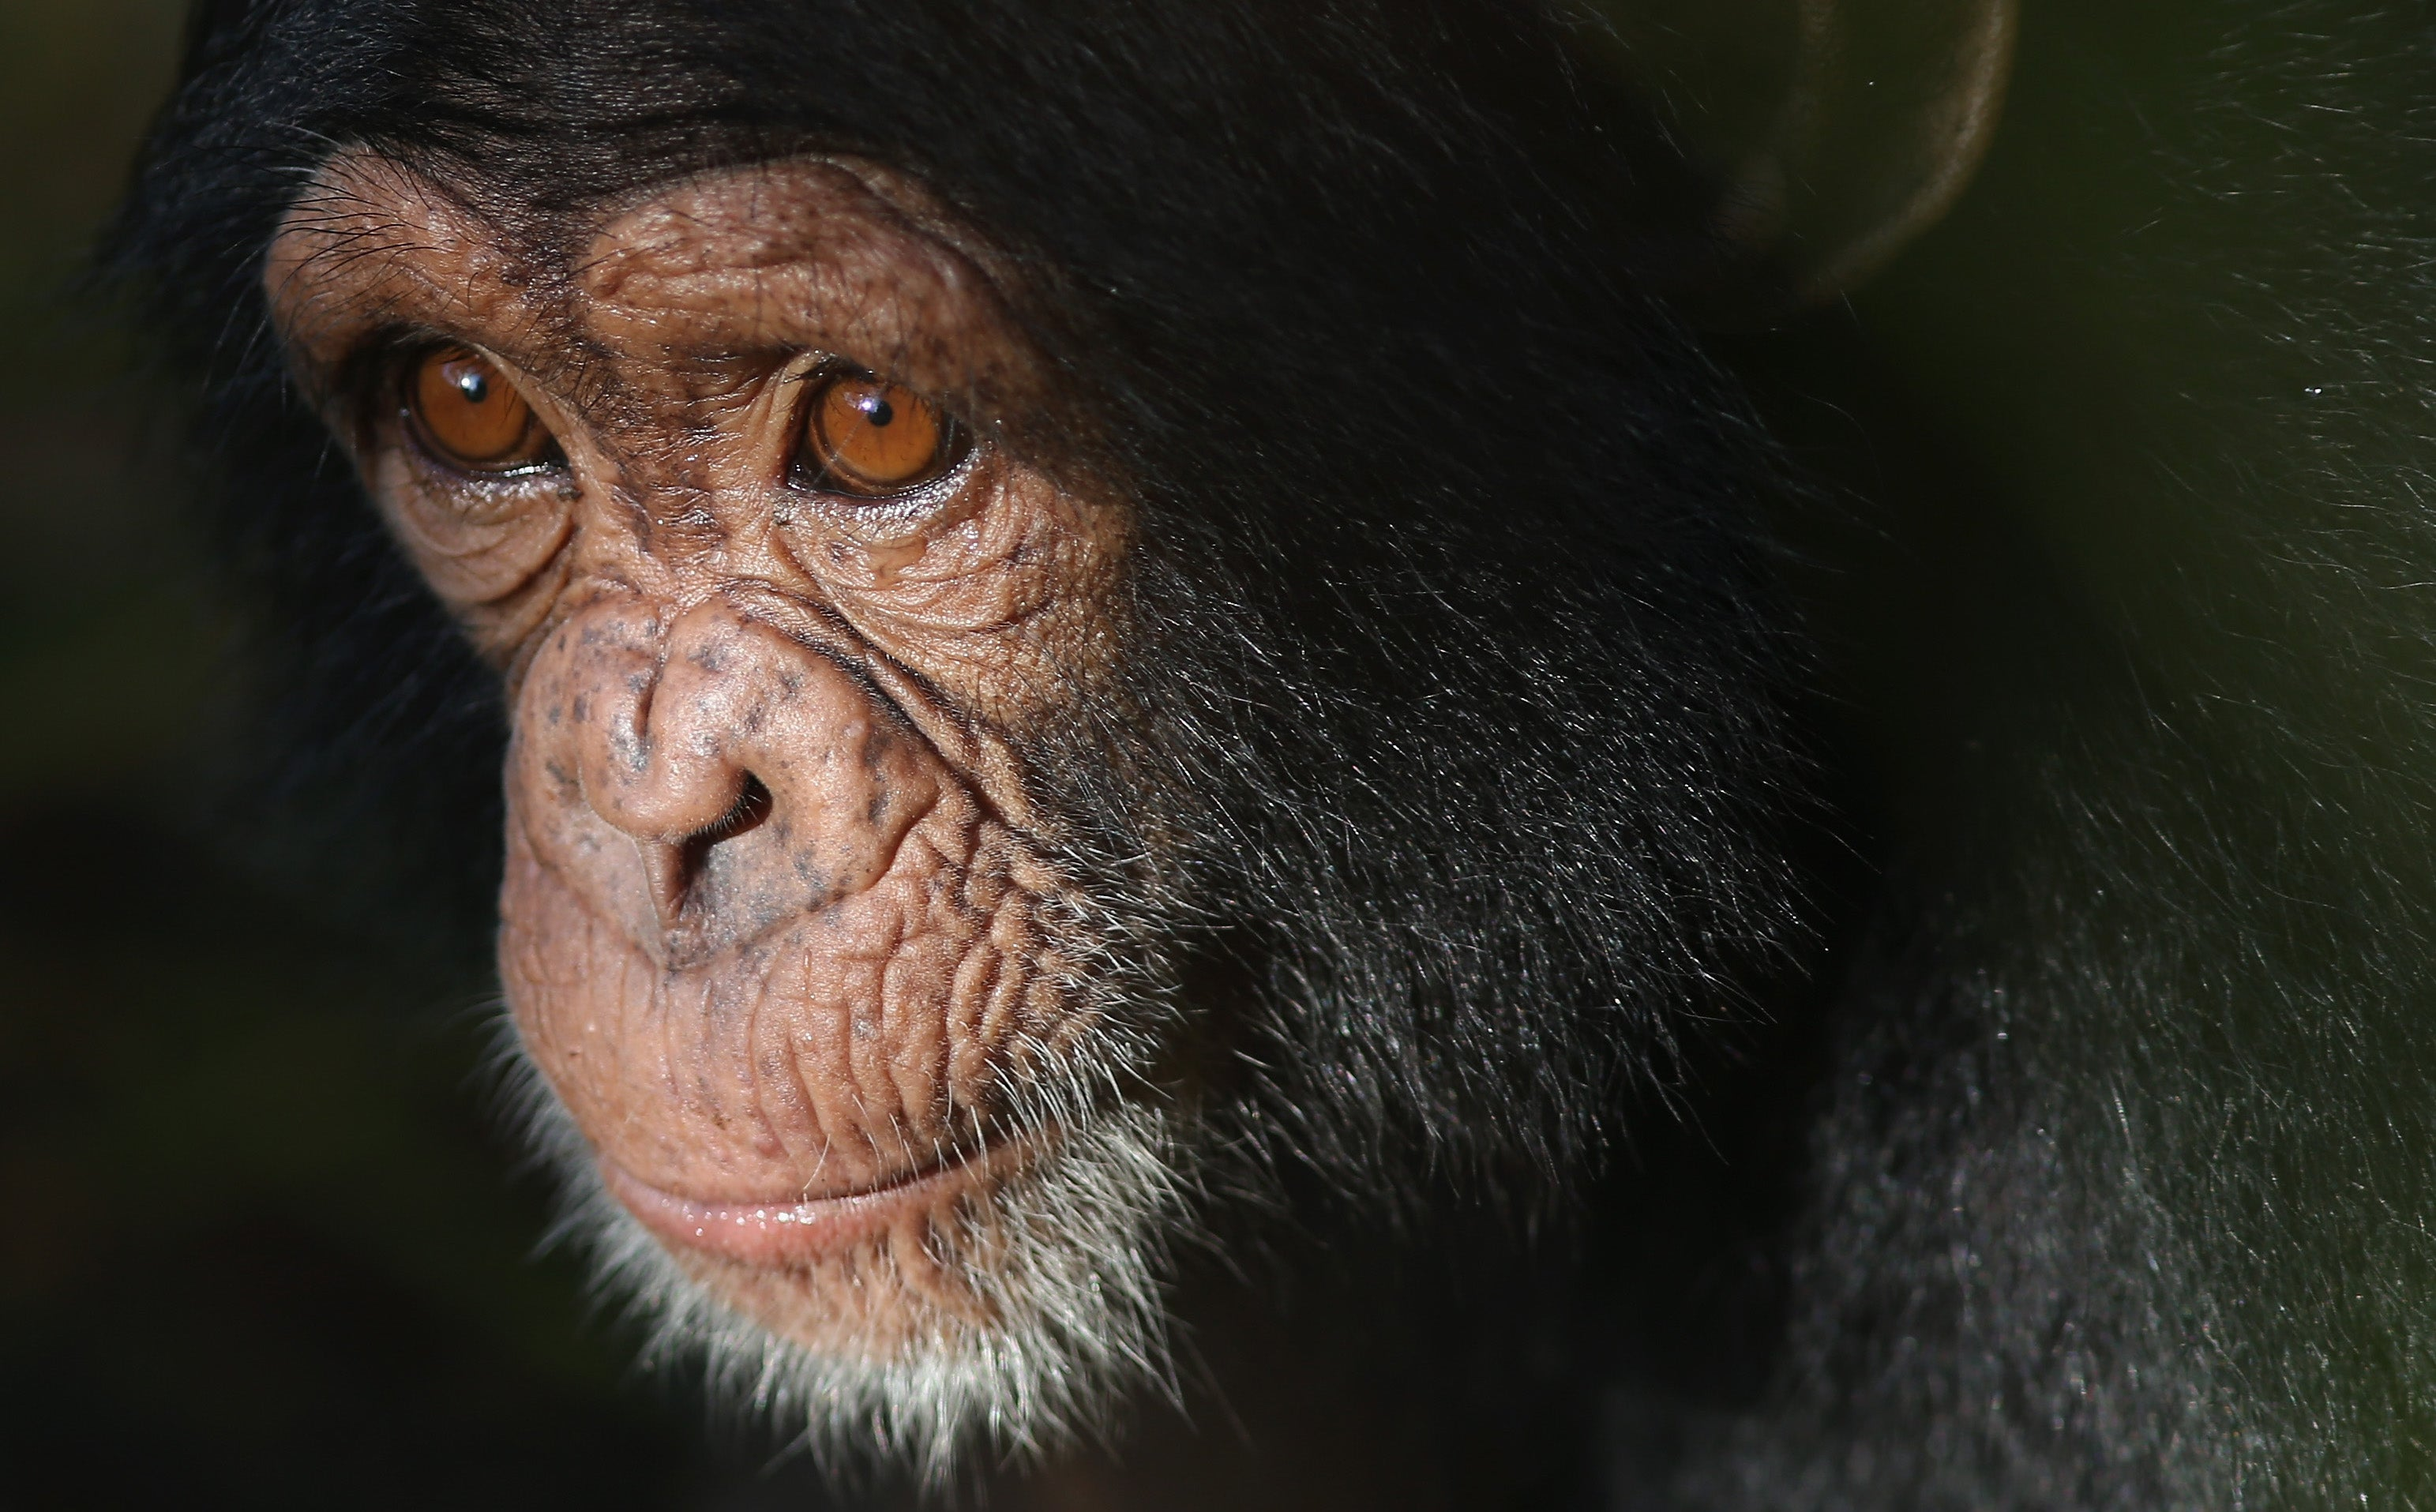 Should A Chimpanzee Be Considered A Person?